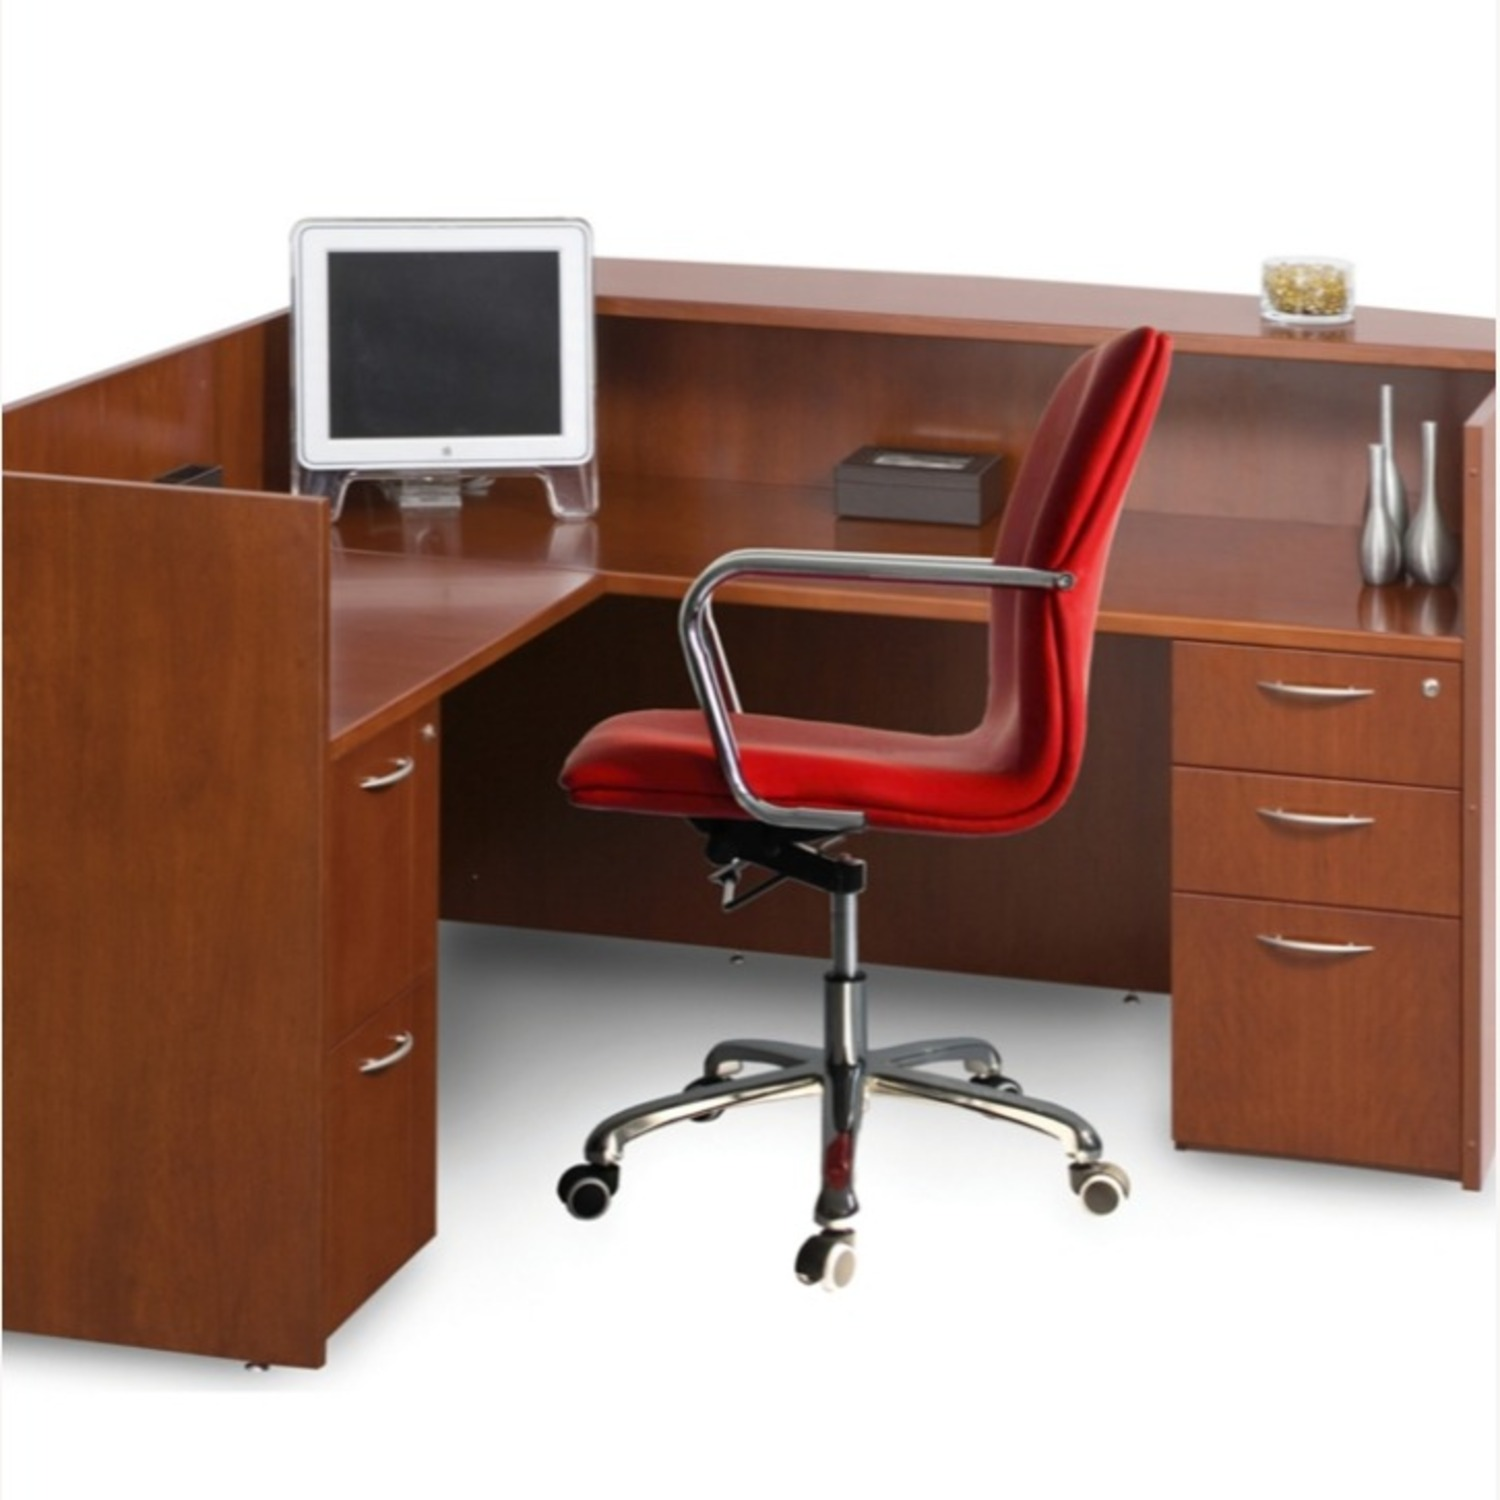 Office Chair In Mid-Back Red Leatherette Finish - image-2